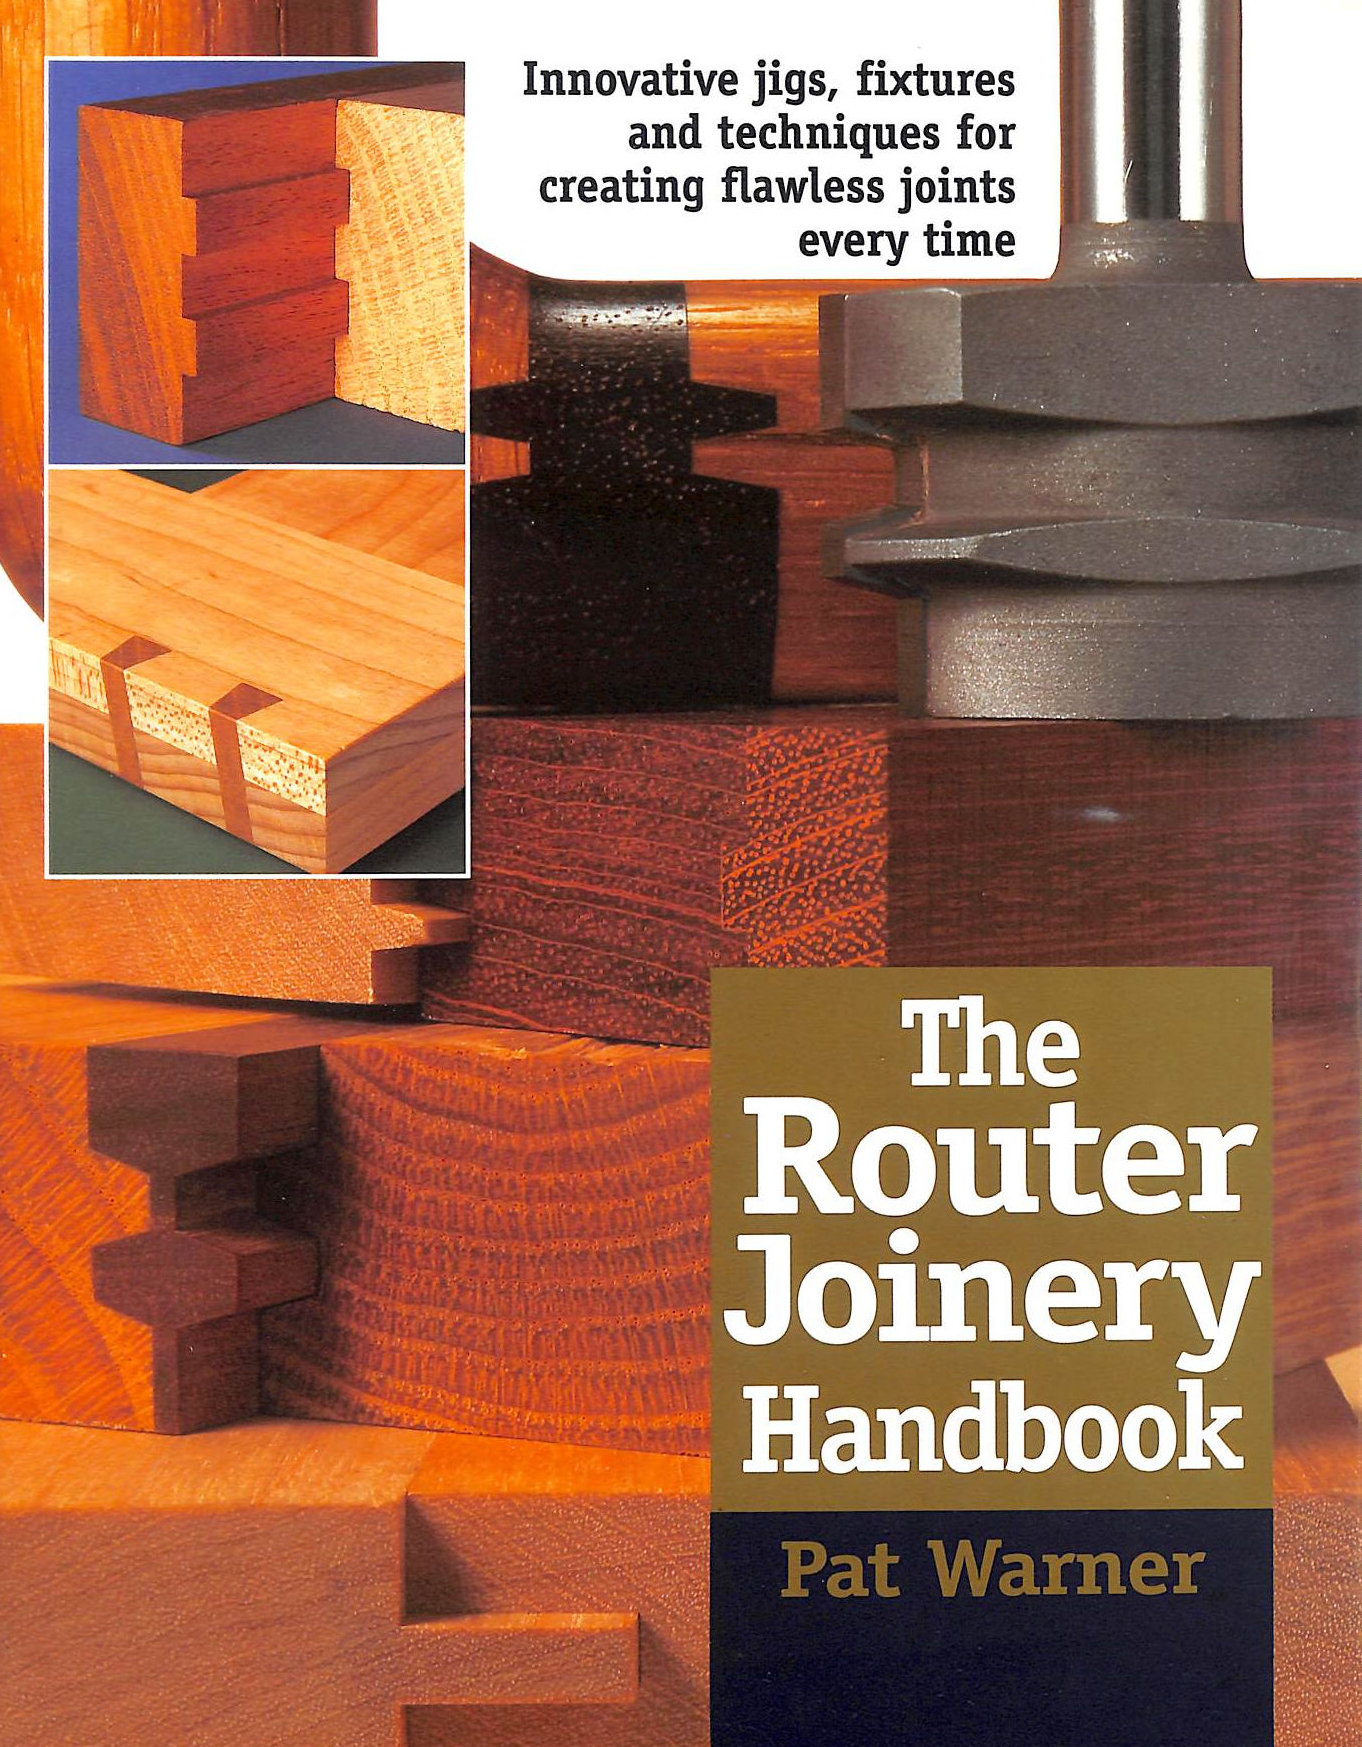 Image for The Router Joinery Handbook: Innovative Jigs, Fixtures and Techniques for Creating Flawless Joints Every Time